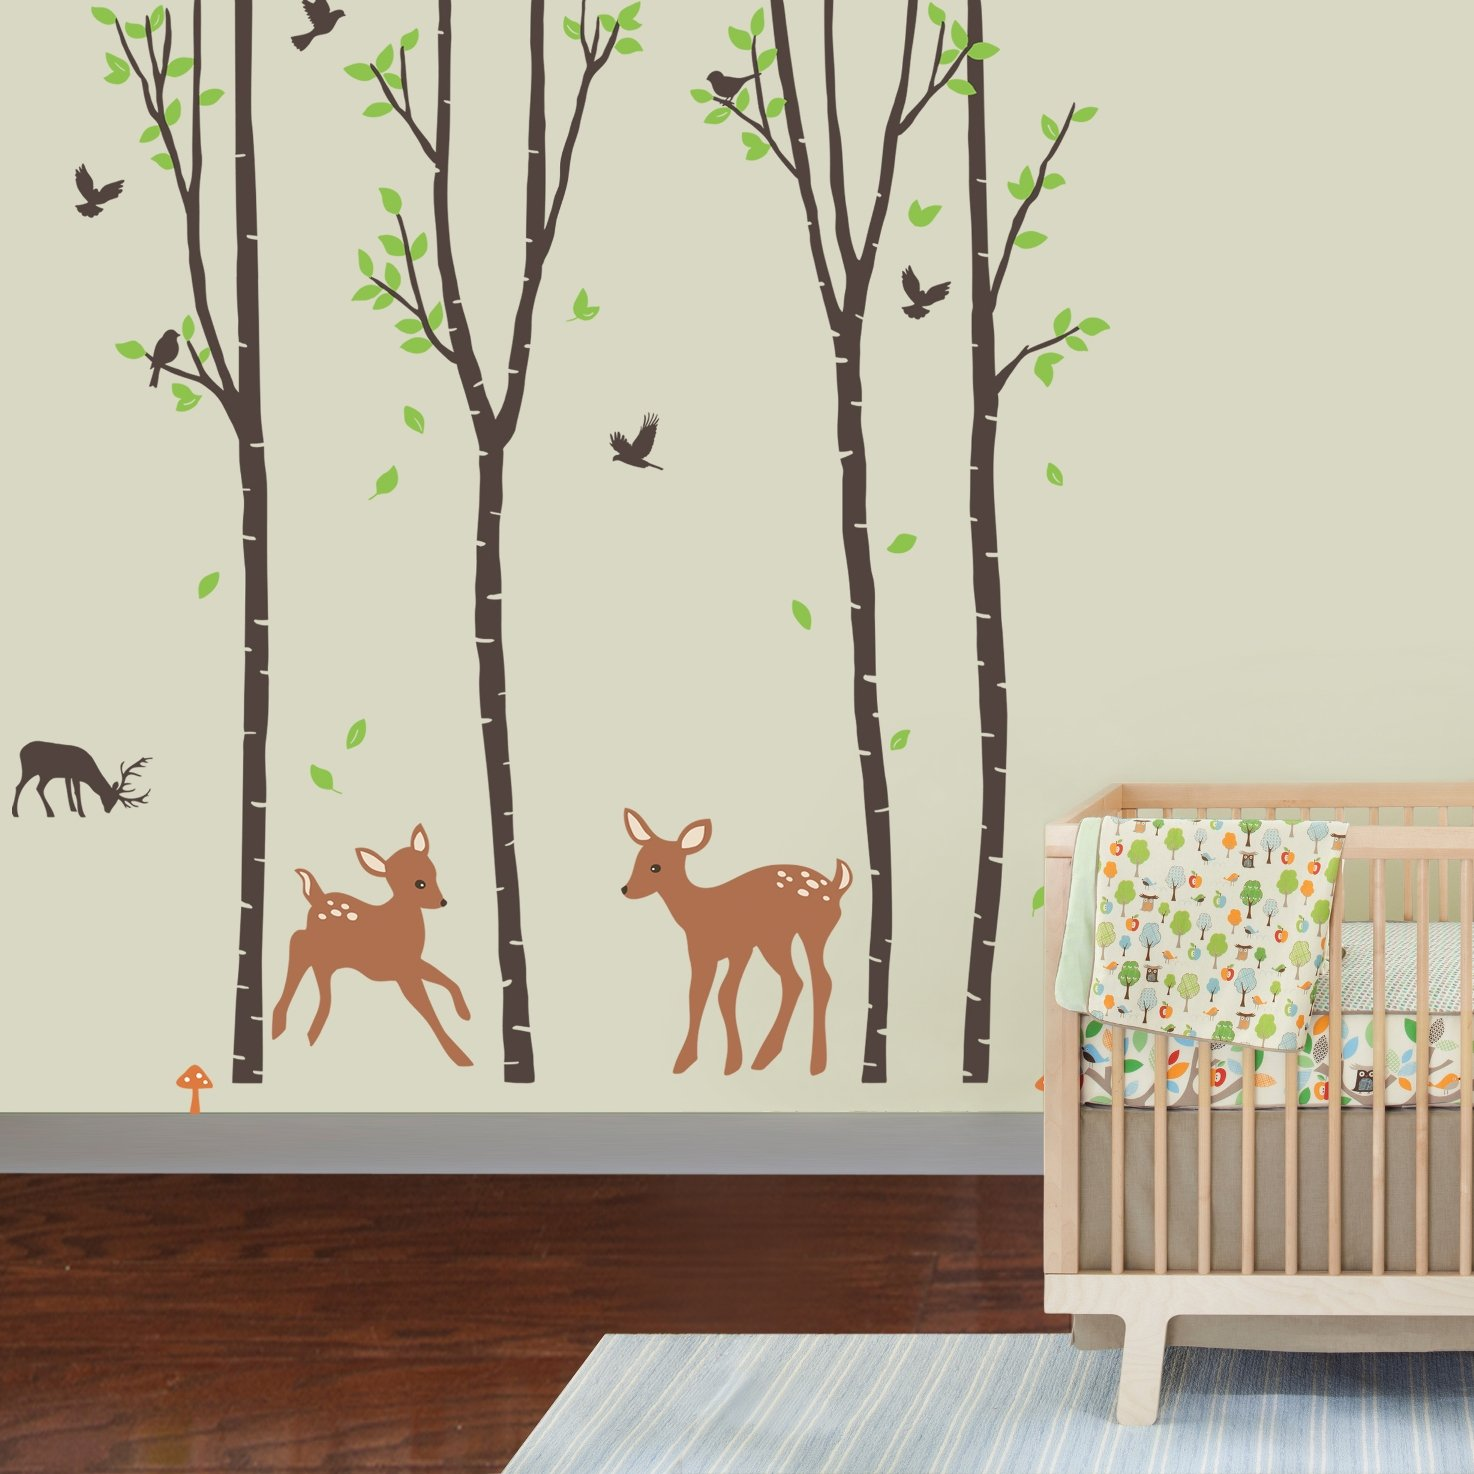 Giant Wall Sticker Decals - Birch Tree Forest with Deers and Flying Birds Baby (trees are 6 feet tall)